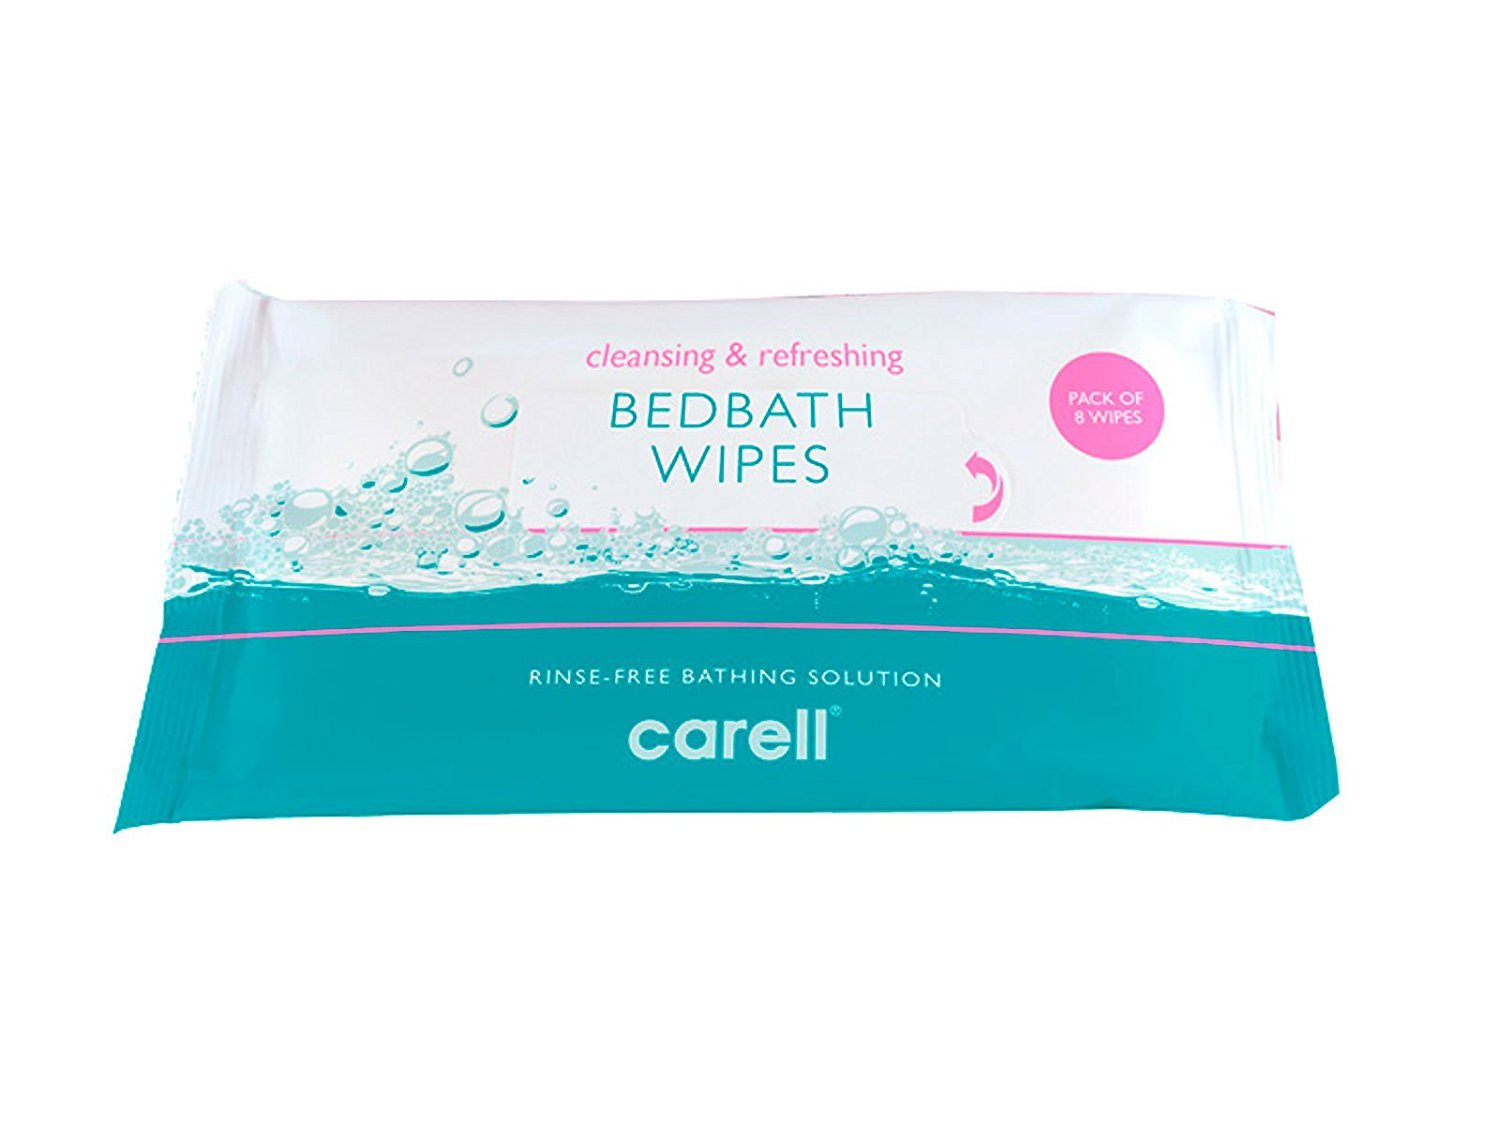 Clinell Bedbath Wipes, Pack of 8 Moisturising Bathing Wipes, TRIPLE PACK: Amazon.es: Electrónica